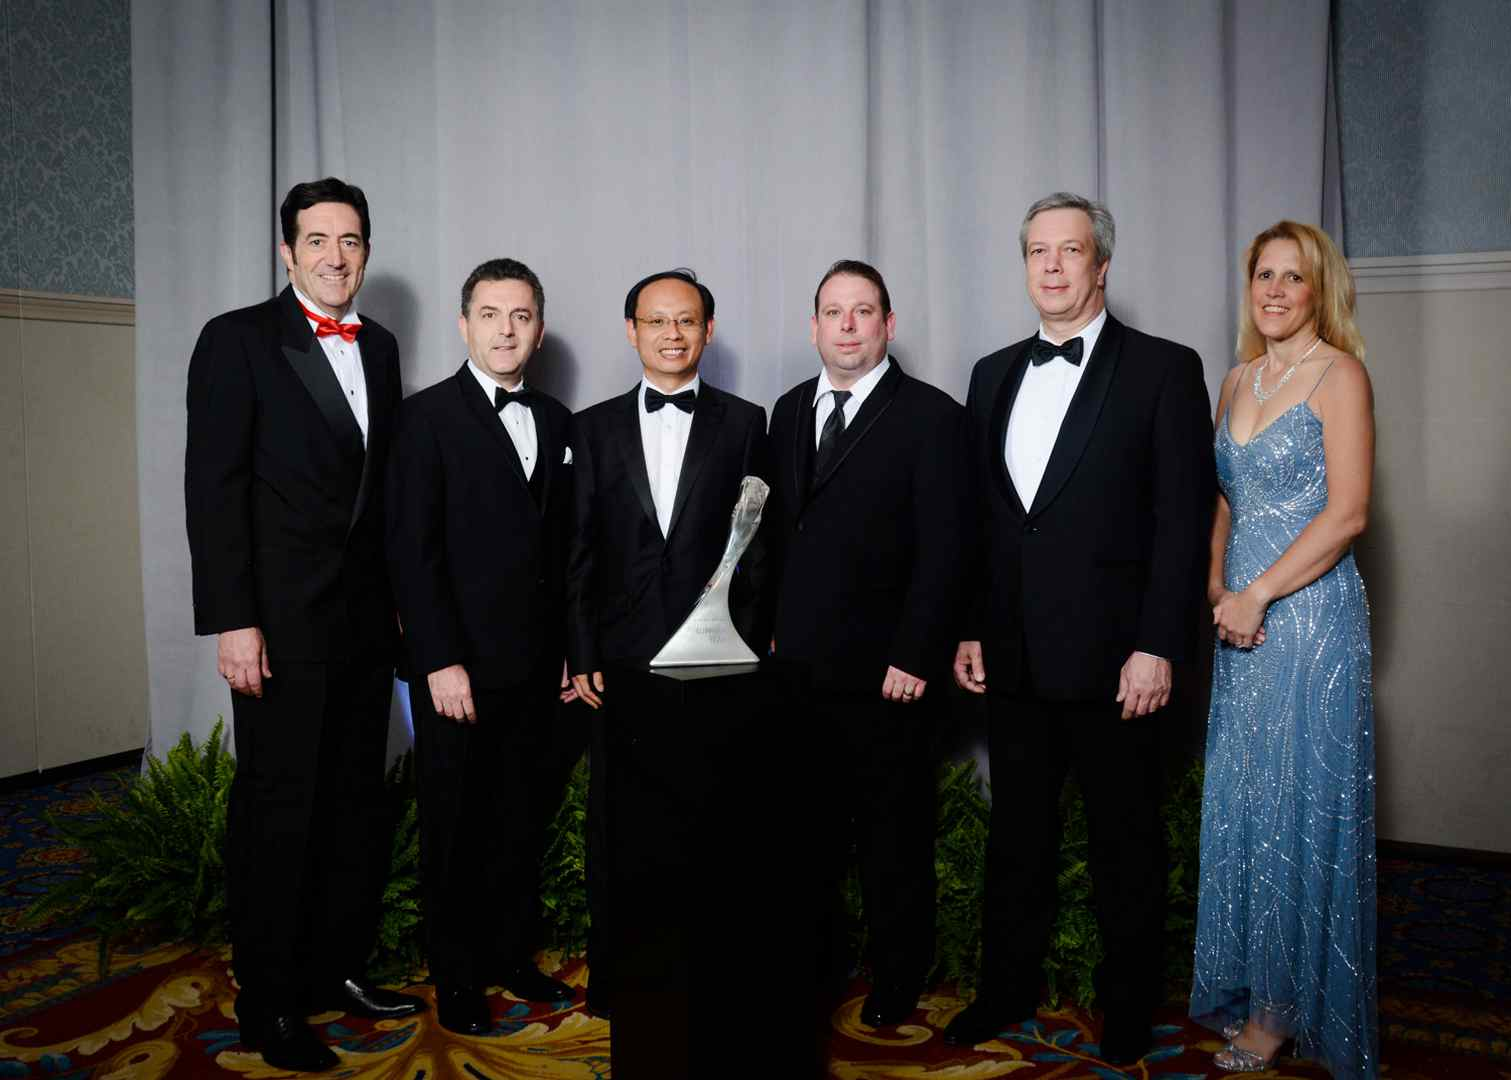 In an April ceremony, GM presented Preh with its 6th Supplier of the Year Award.